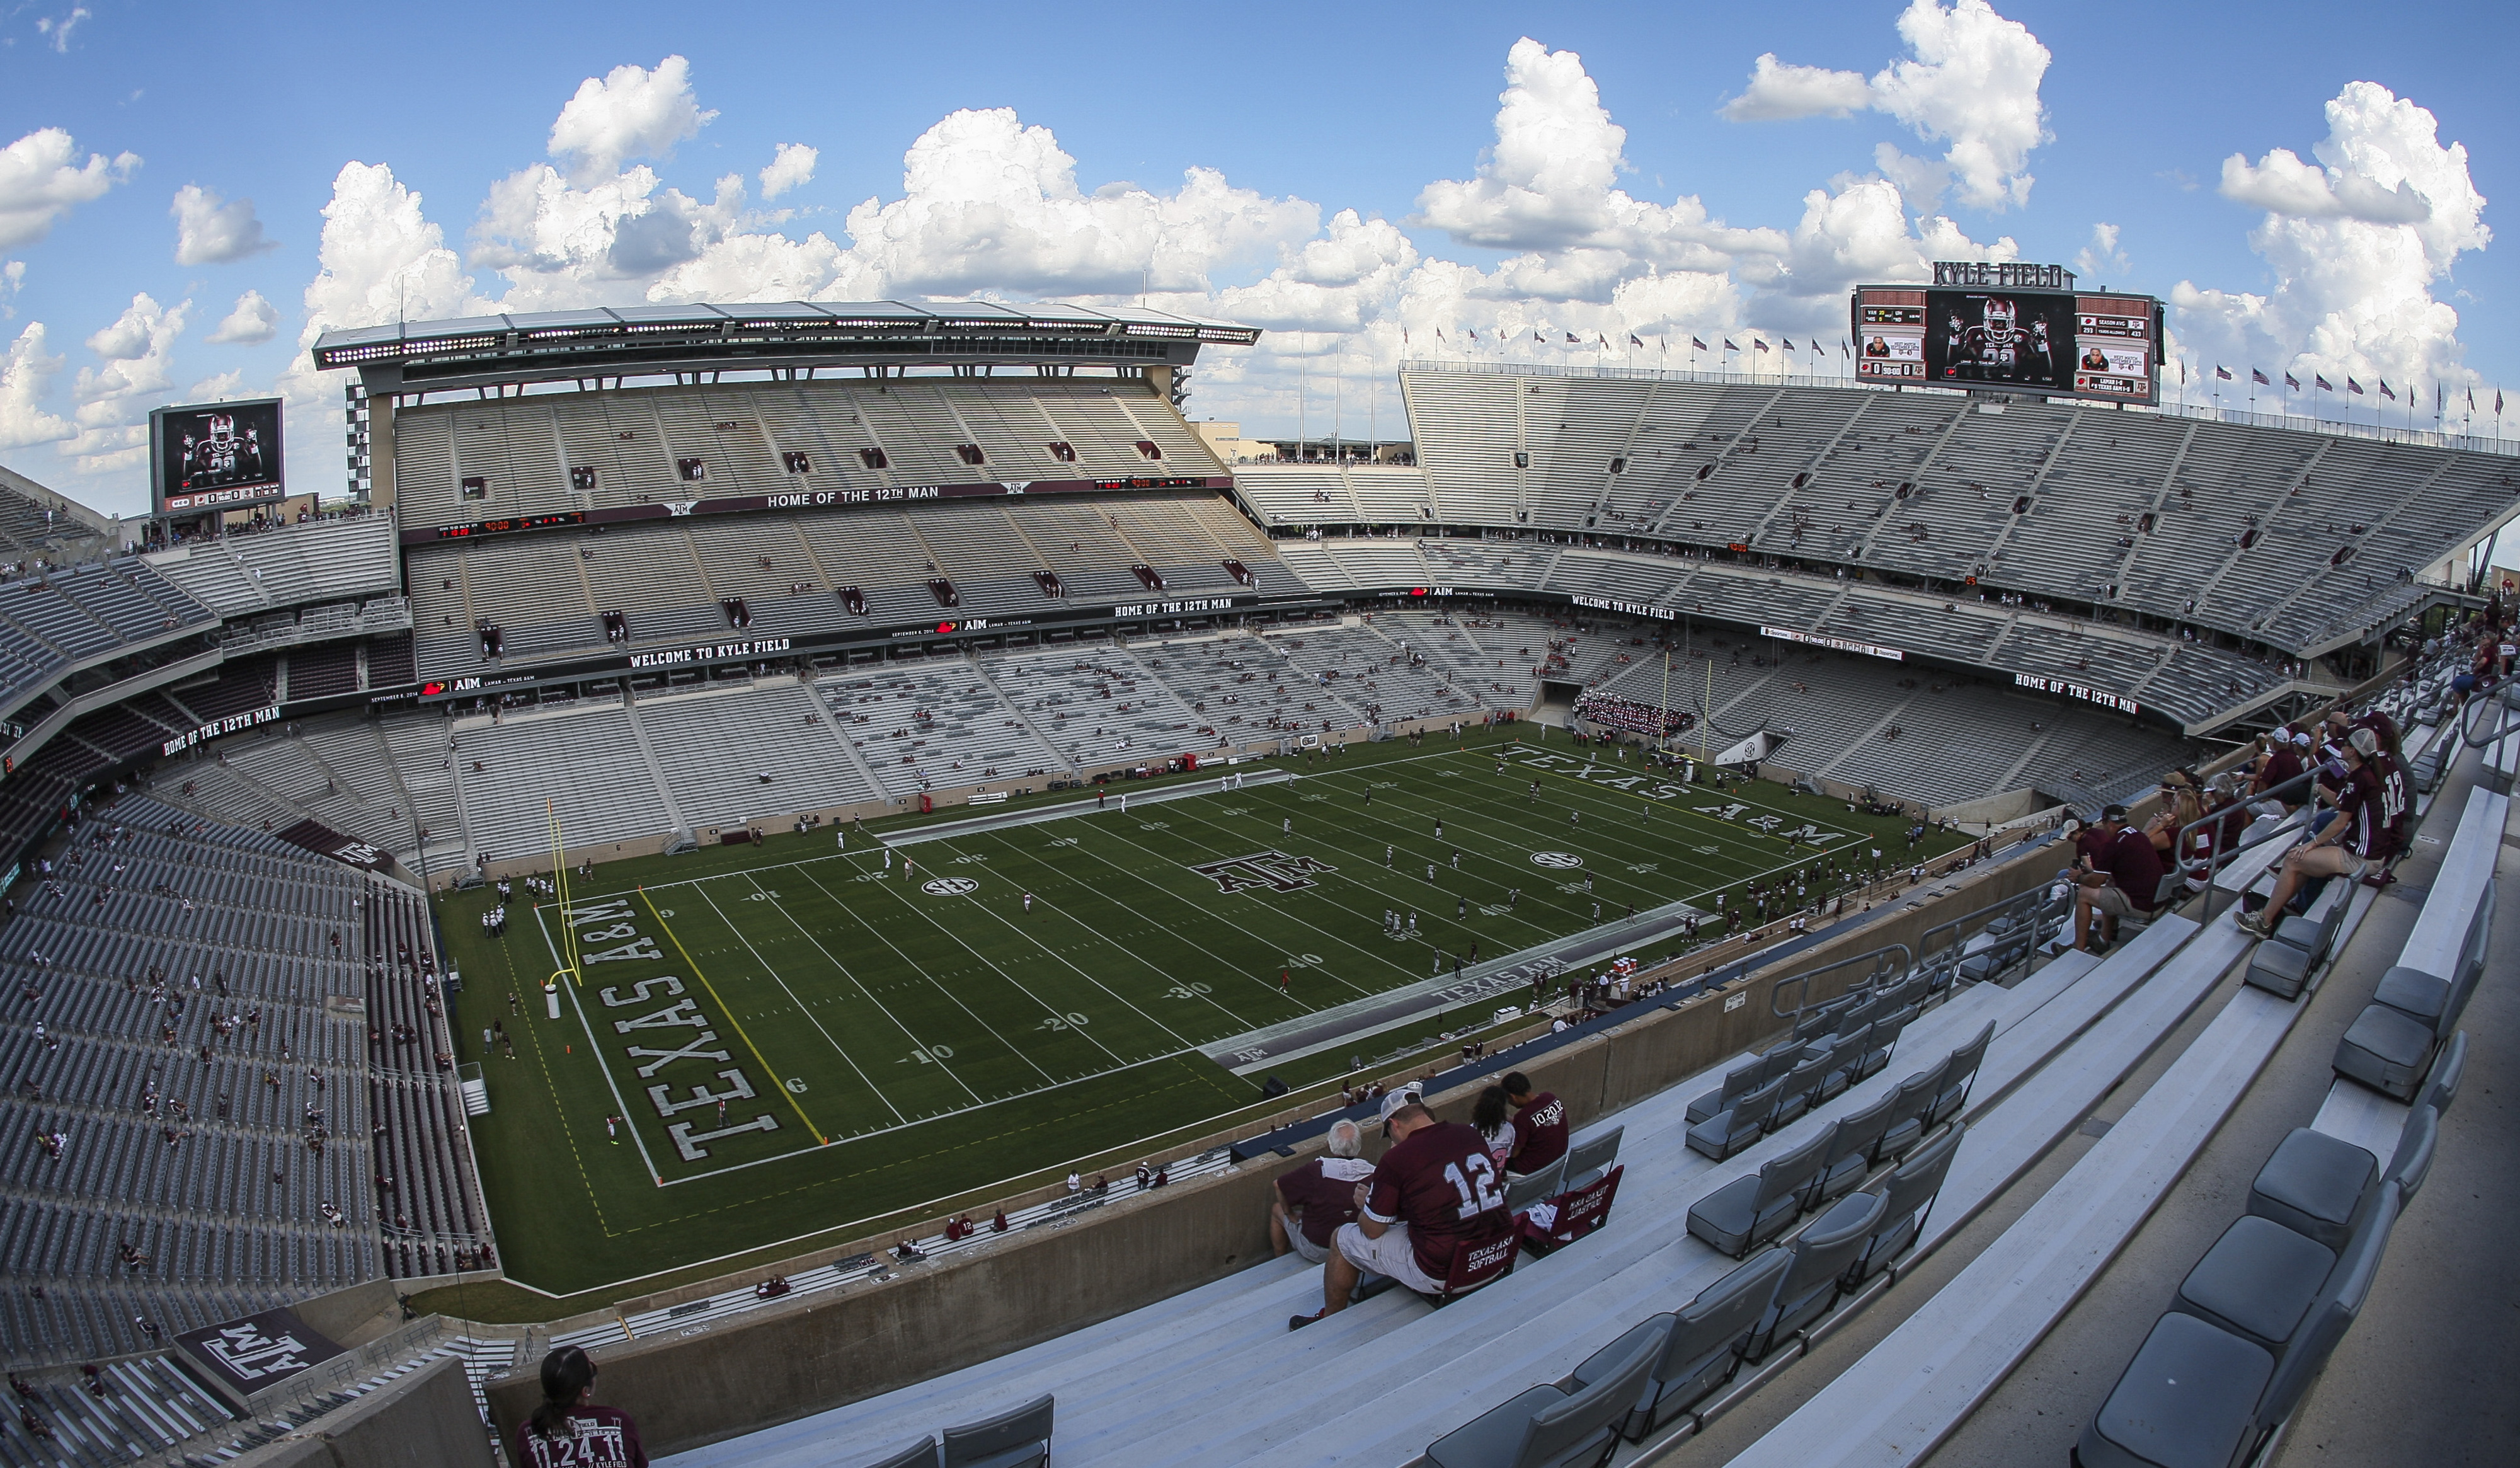 Kyle Field will play host to the largest crowd ever to see a football game in Texas Saturday.